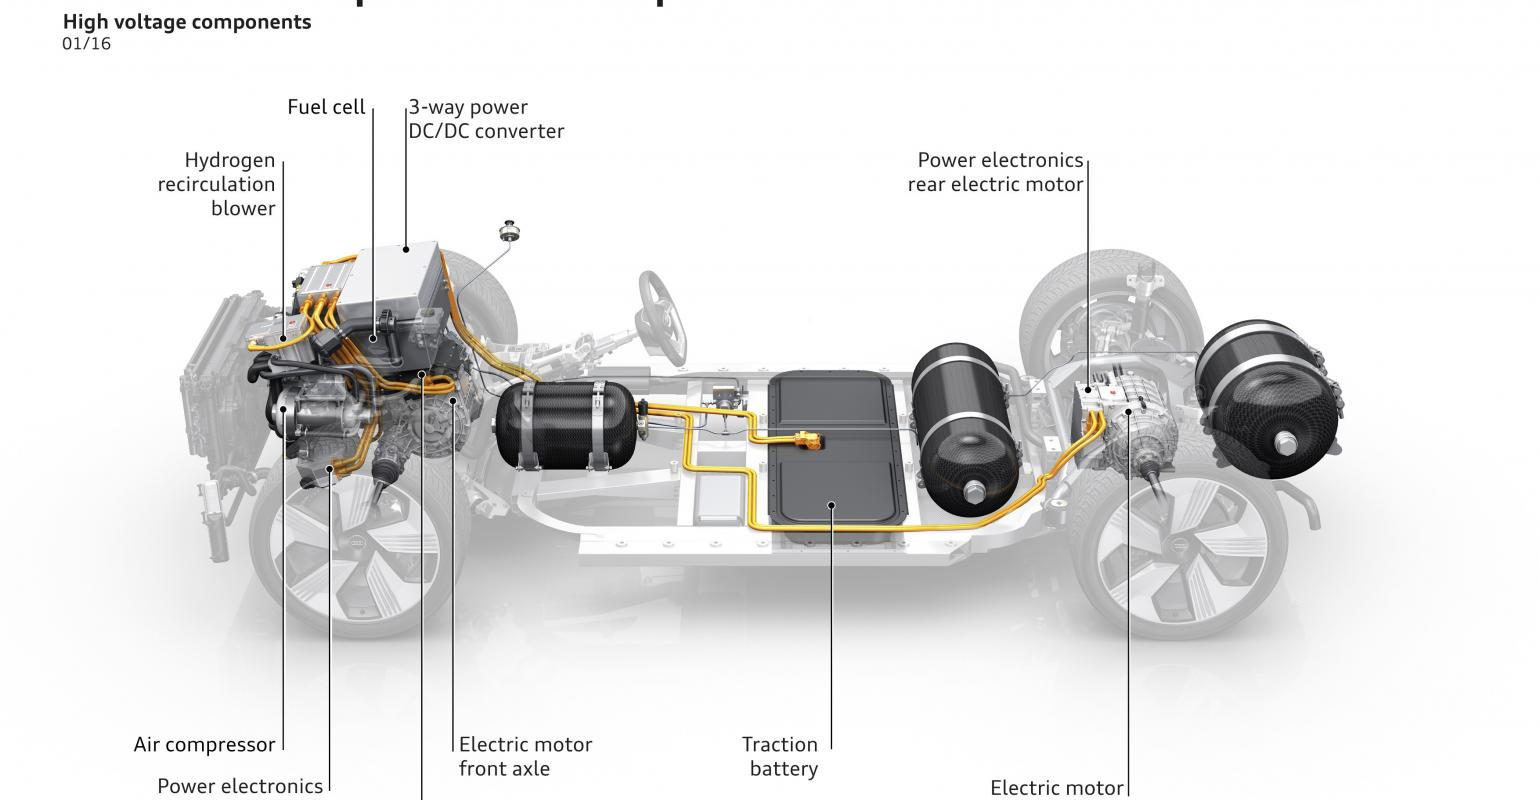 Rising Oe Interest In Fuel Cells Has Ballard Back Light Vehicle Fuelcell Battery Tester Schematic Powertrain Packaged Into Audi Htron Quattro Concept Unveiled 2015